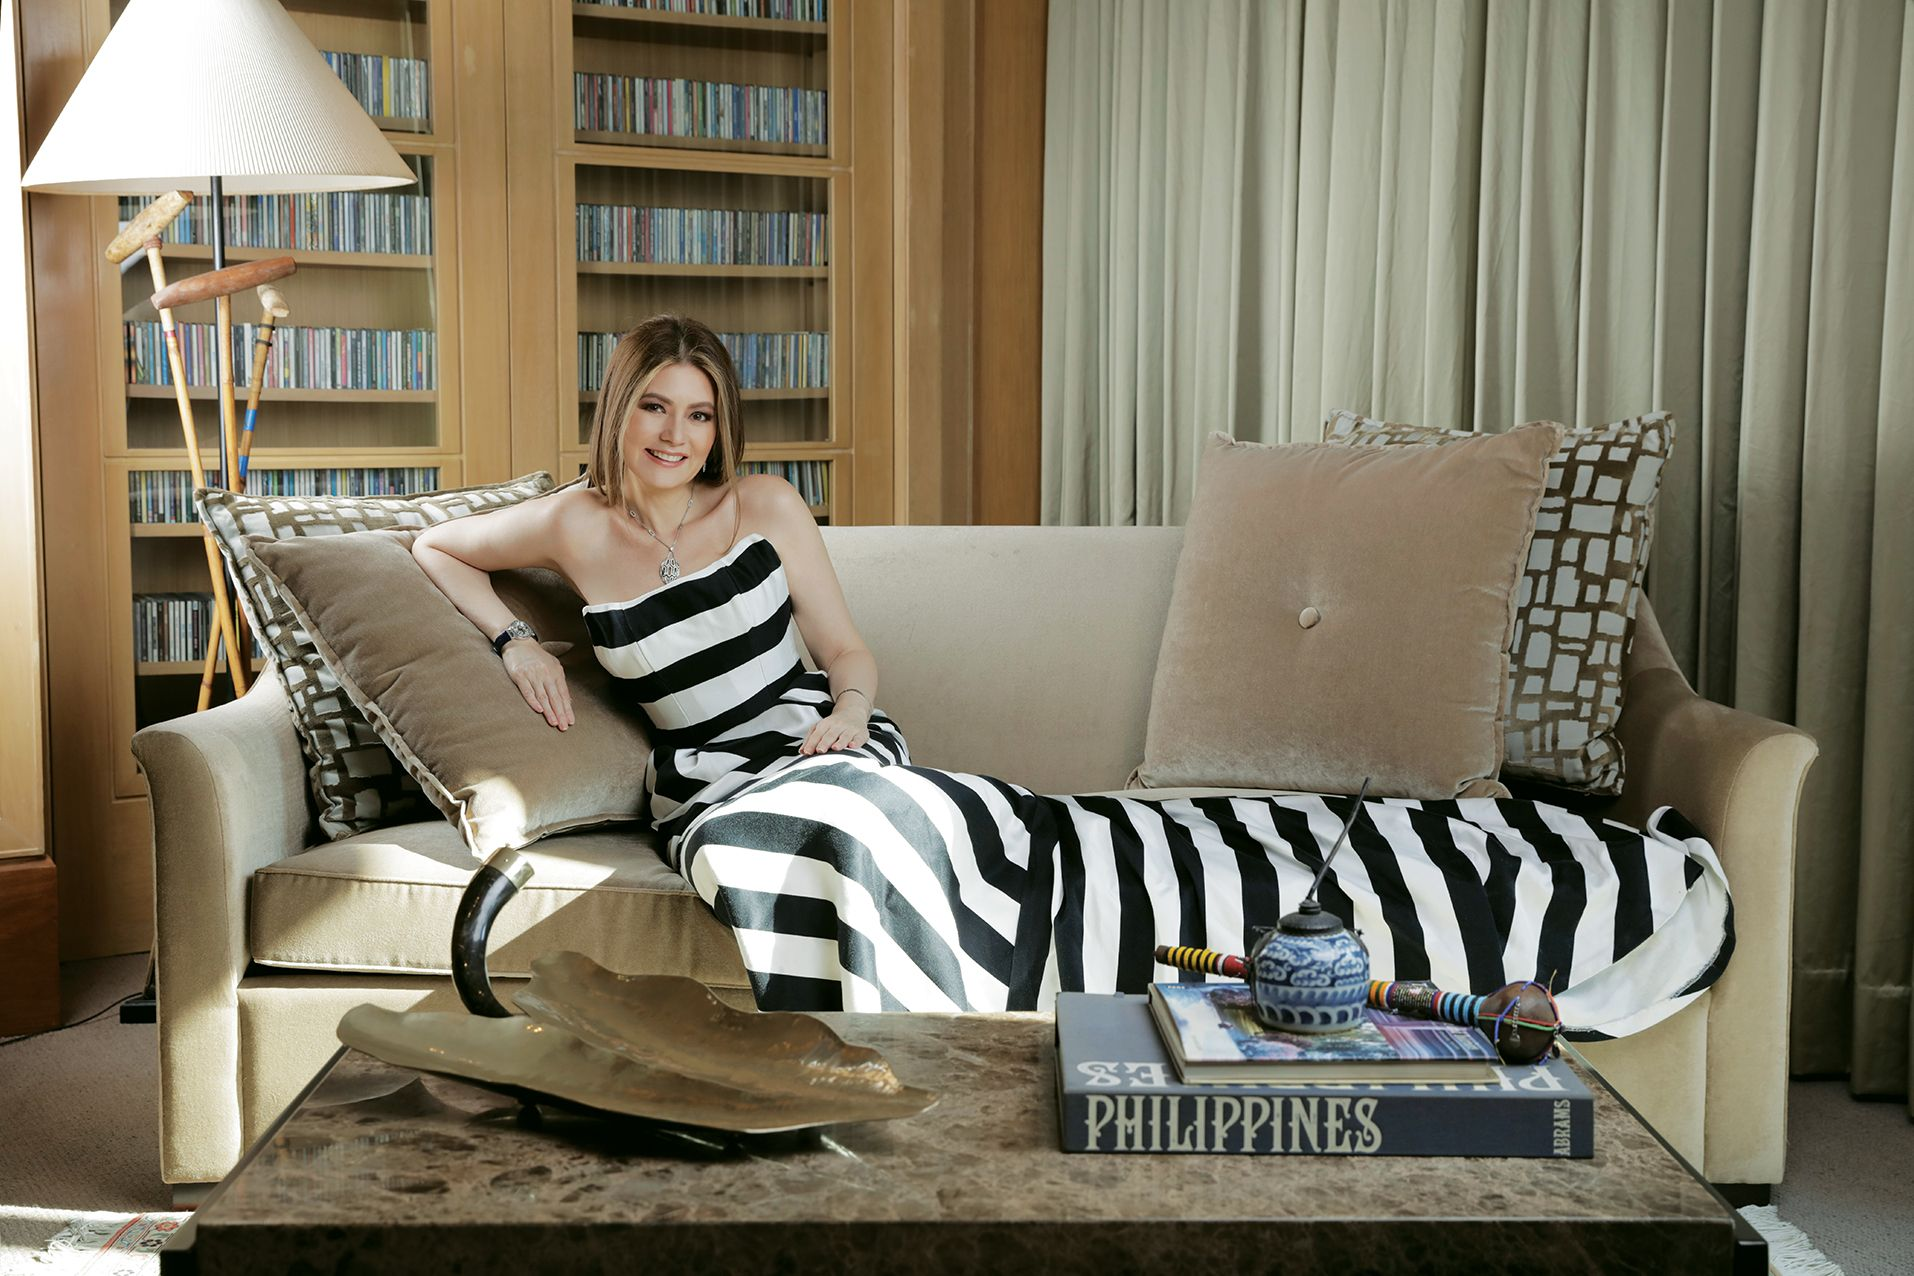 See How Special Envoy to UNICEF Nikki Prieto-Teodoro Fights for the Welfare of Children